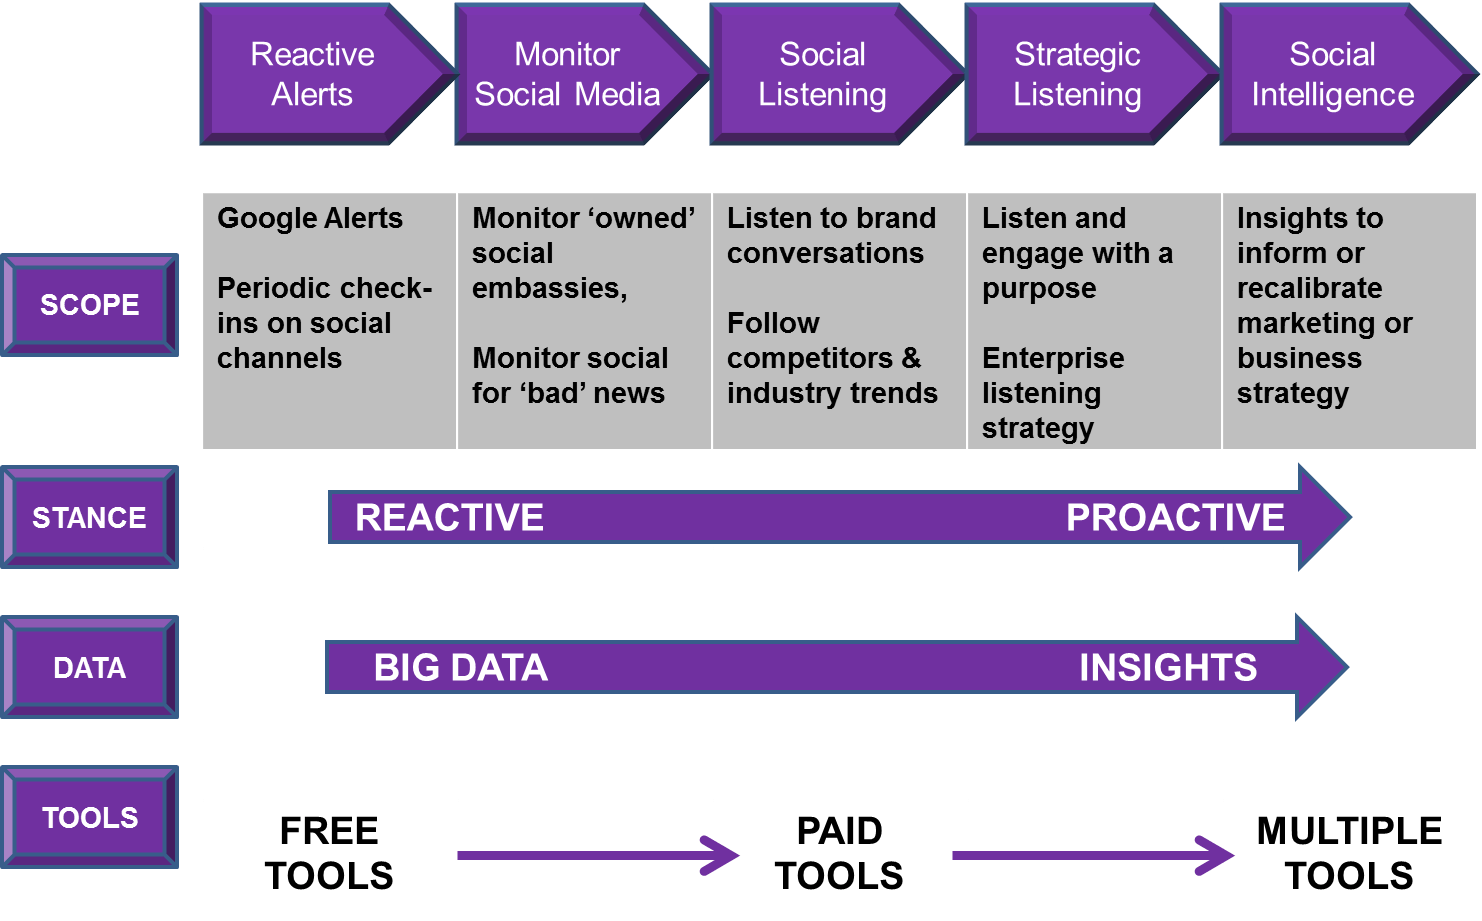 Social media intelligence lifecycle - Various stages involved